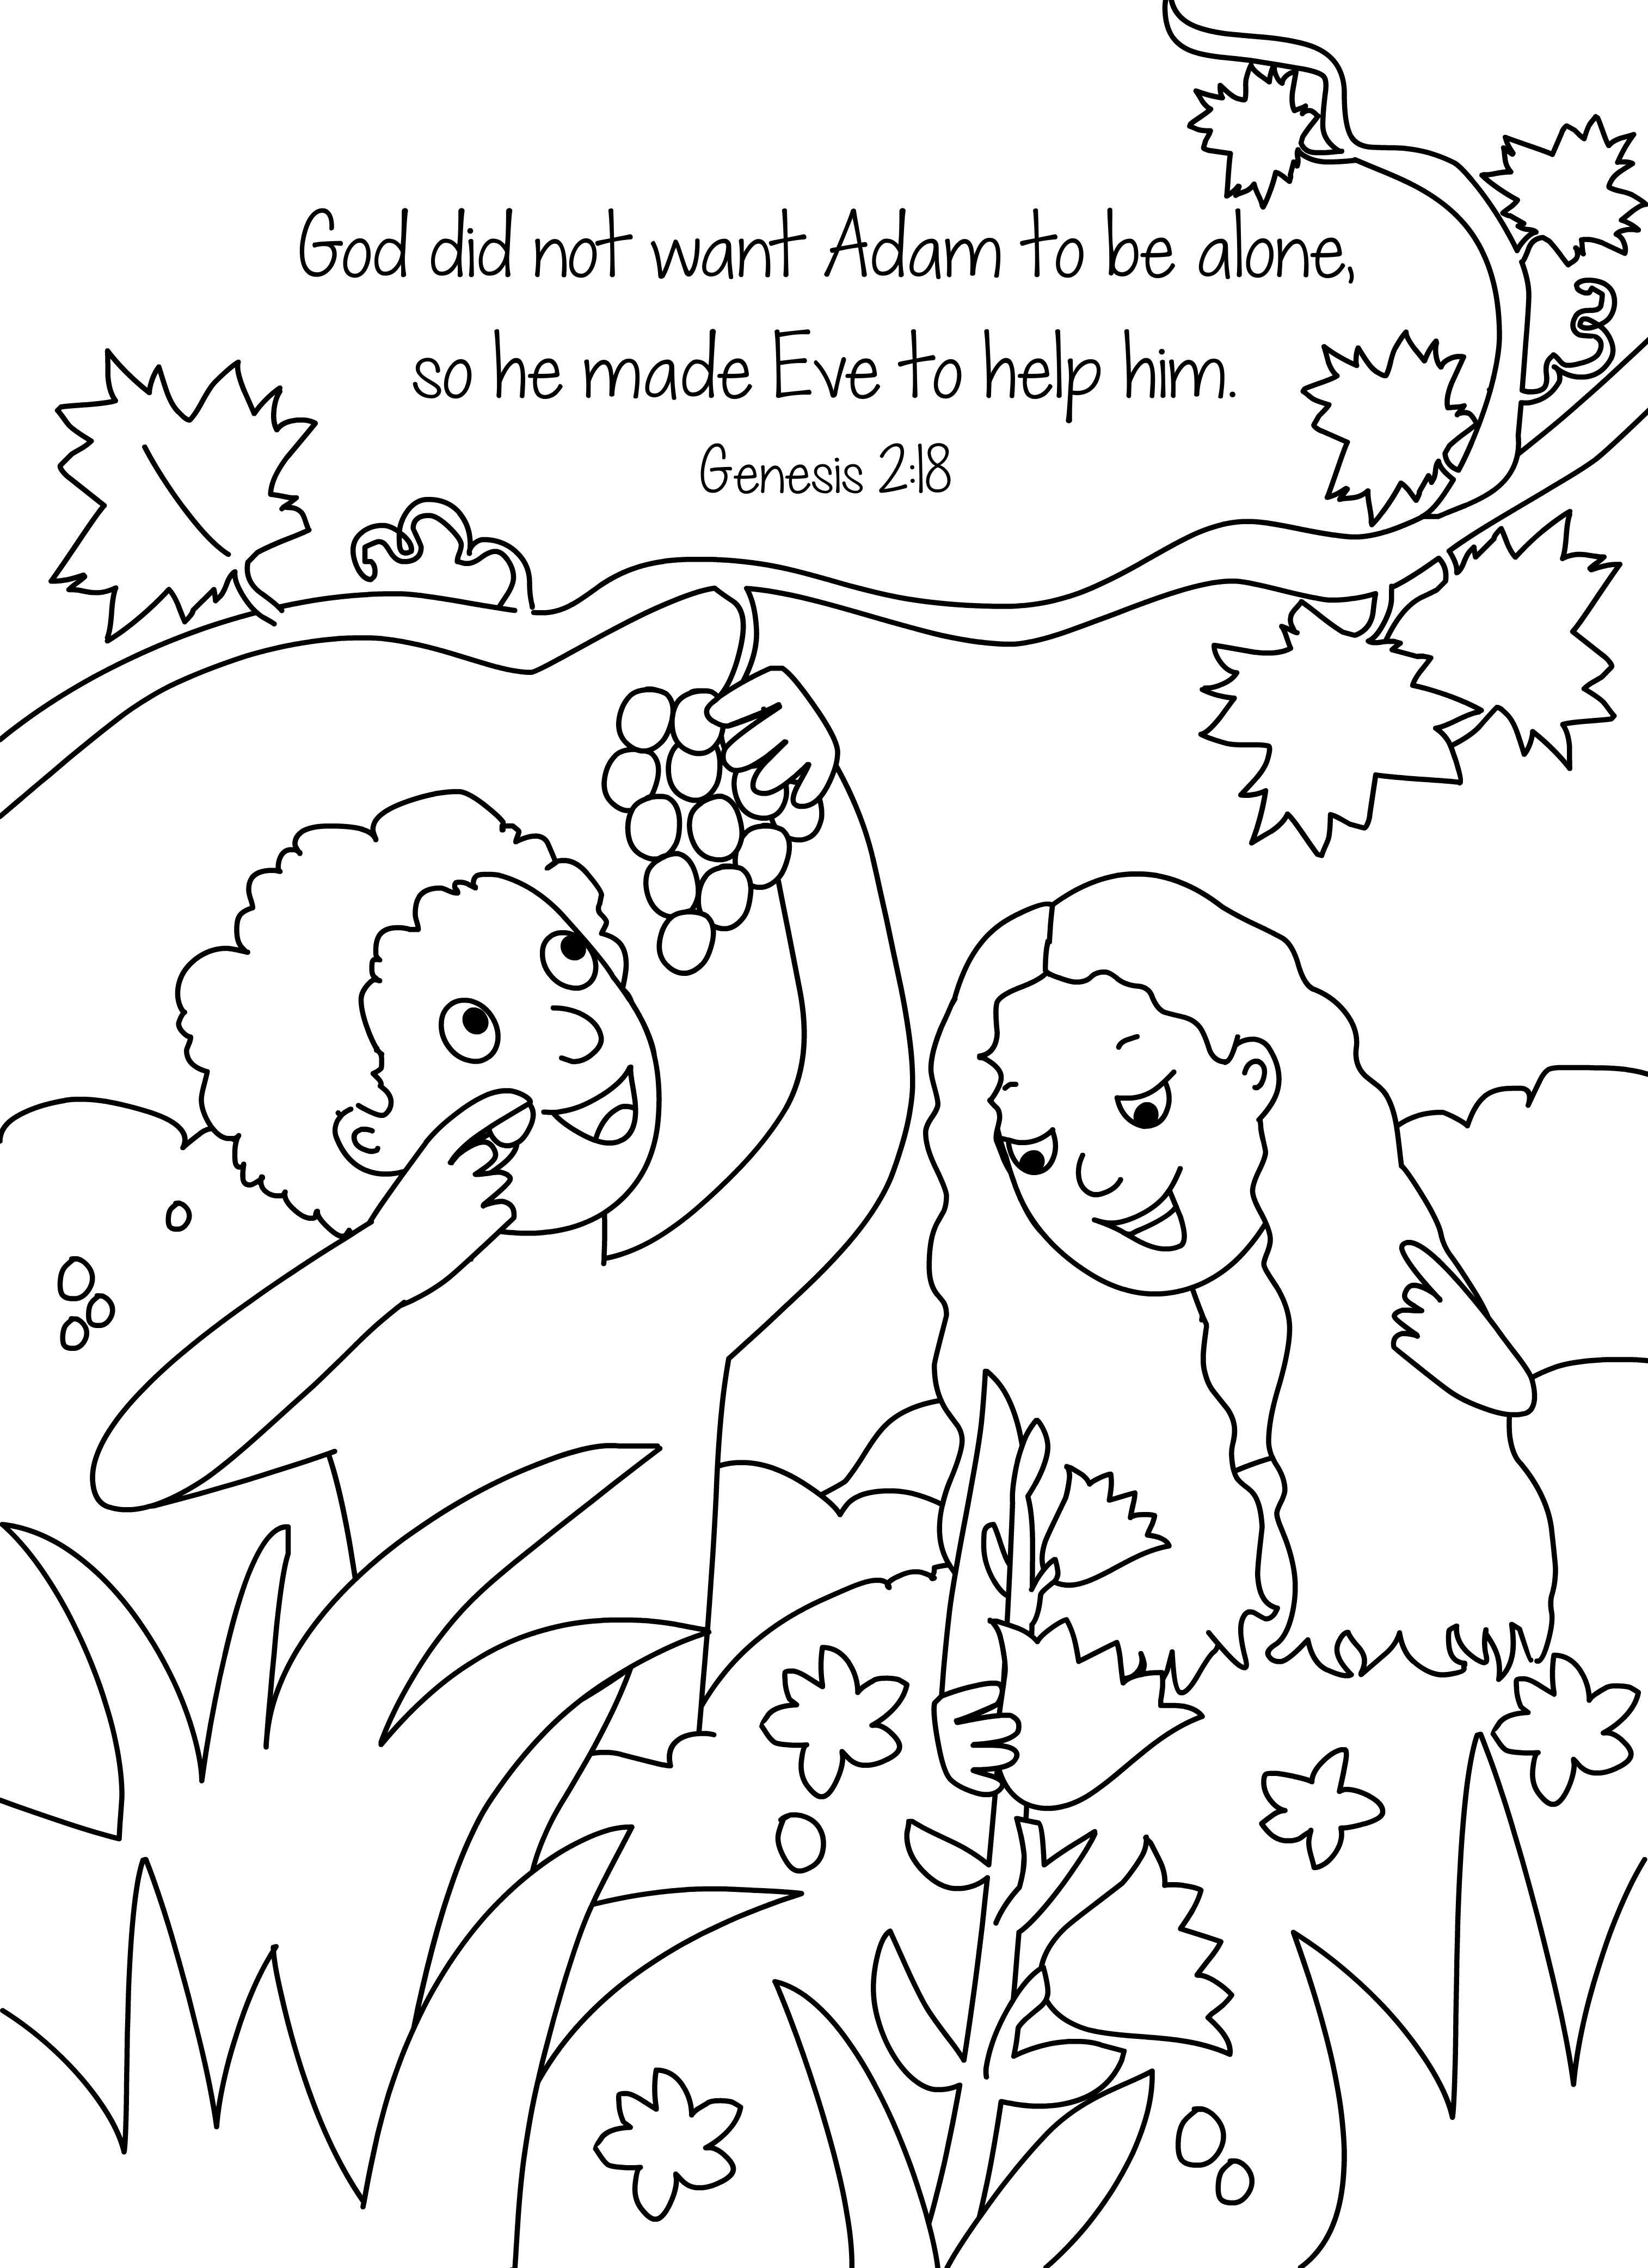 Creation Memory Verse Coloring Sheet From The Creation Lesson Of The In The Beginning Series Of The Creation Coloring Pages Bible Coloring Pages Bible Coloring